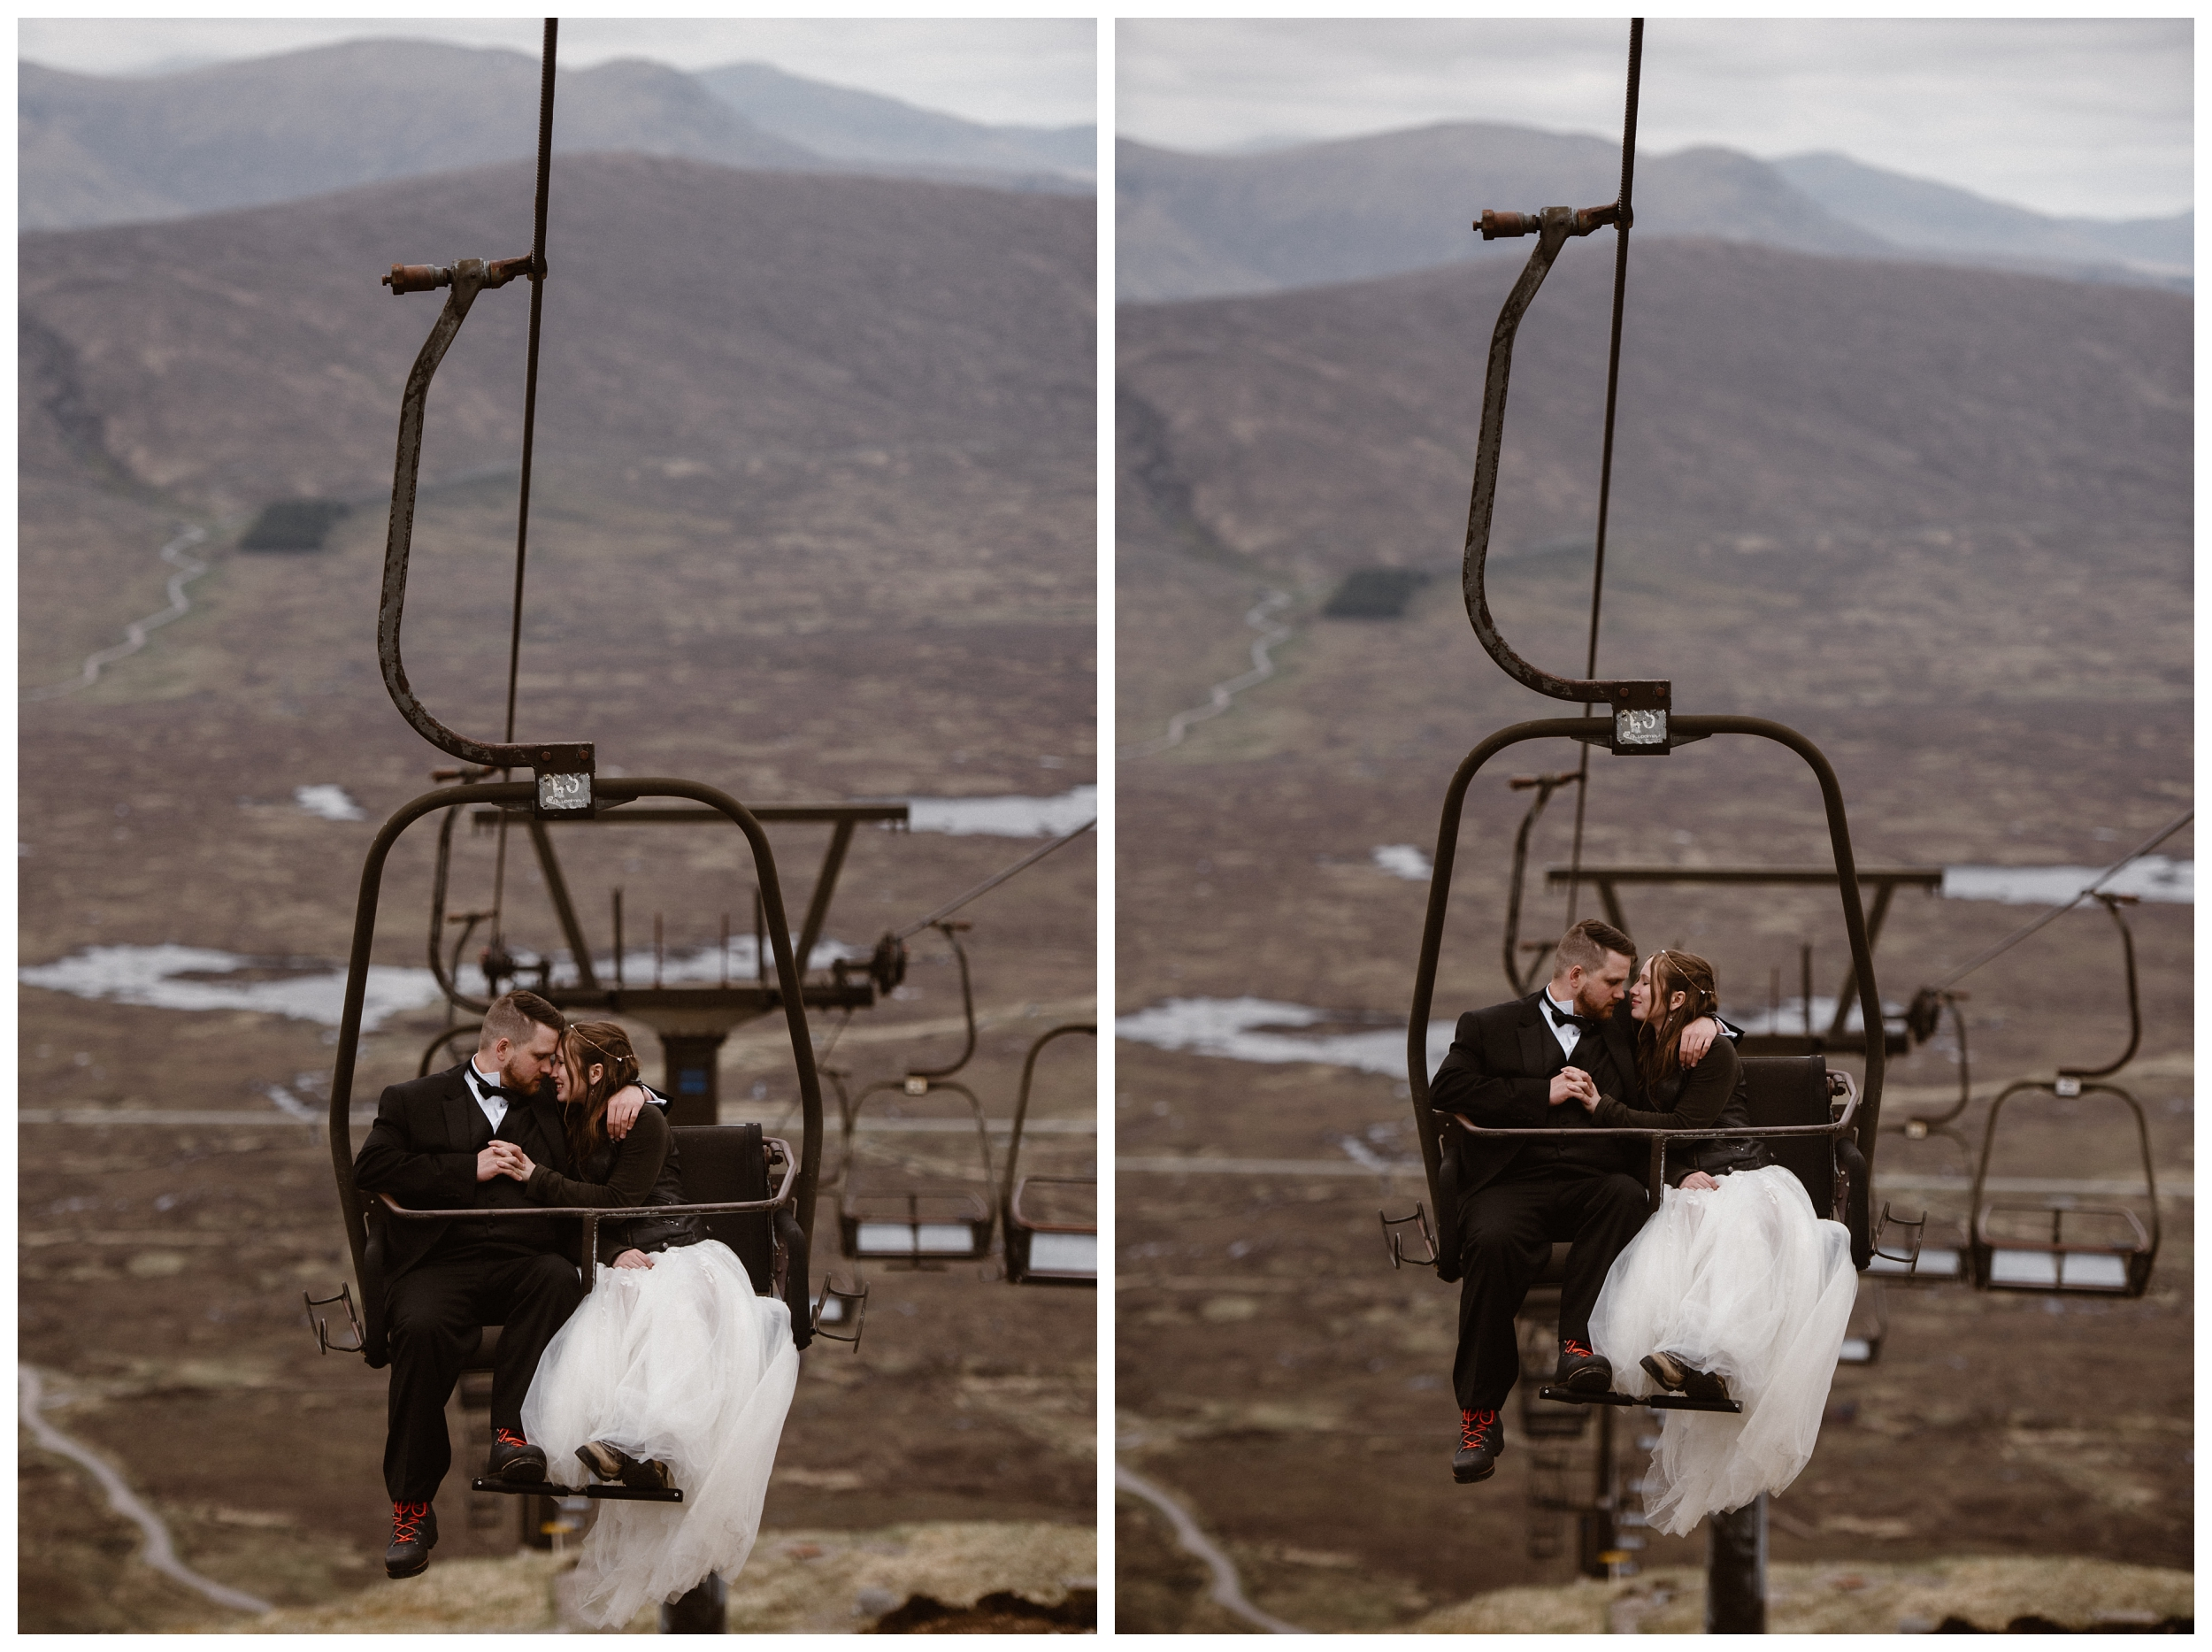 Cuddling together to stay warm in the chill of early May in Scotland, Elissa and Daniel ride a gondola up a mountain outside Glencoe and Ben Nevis before their destination elopement. Photo by Maddie Mae, Adventure Instead.